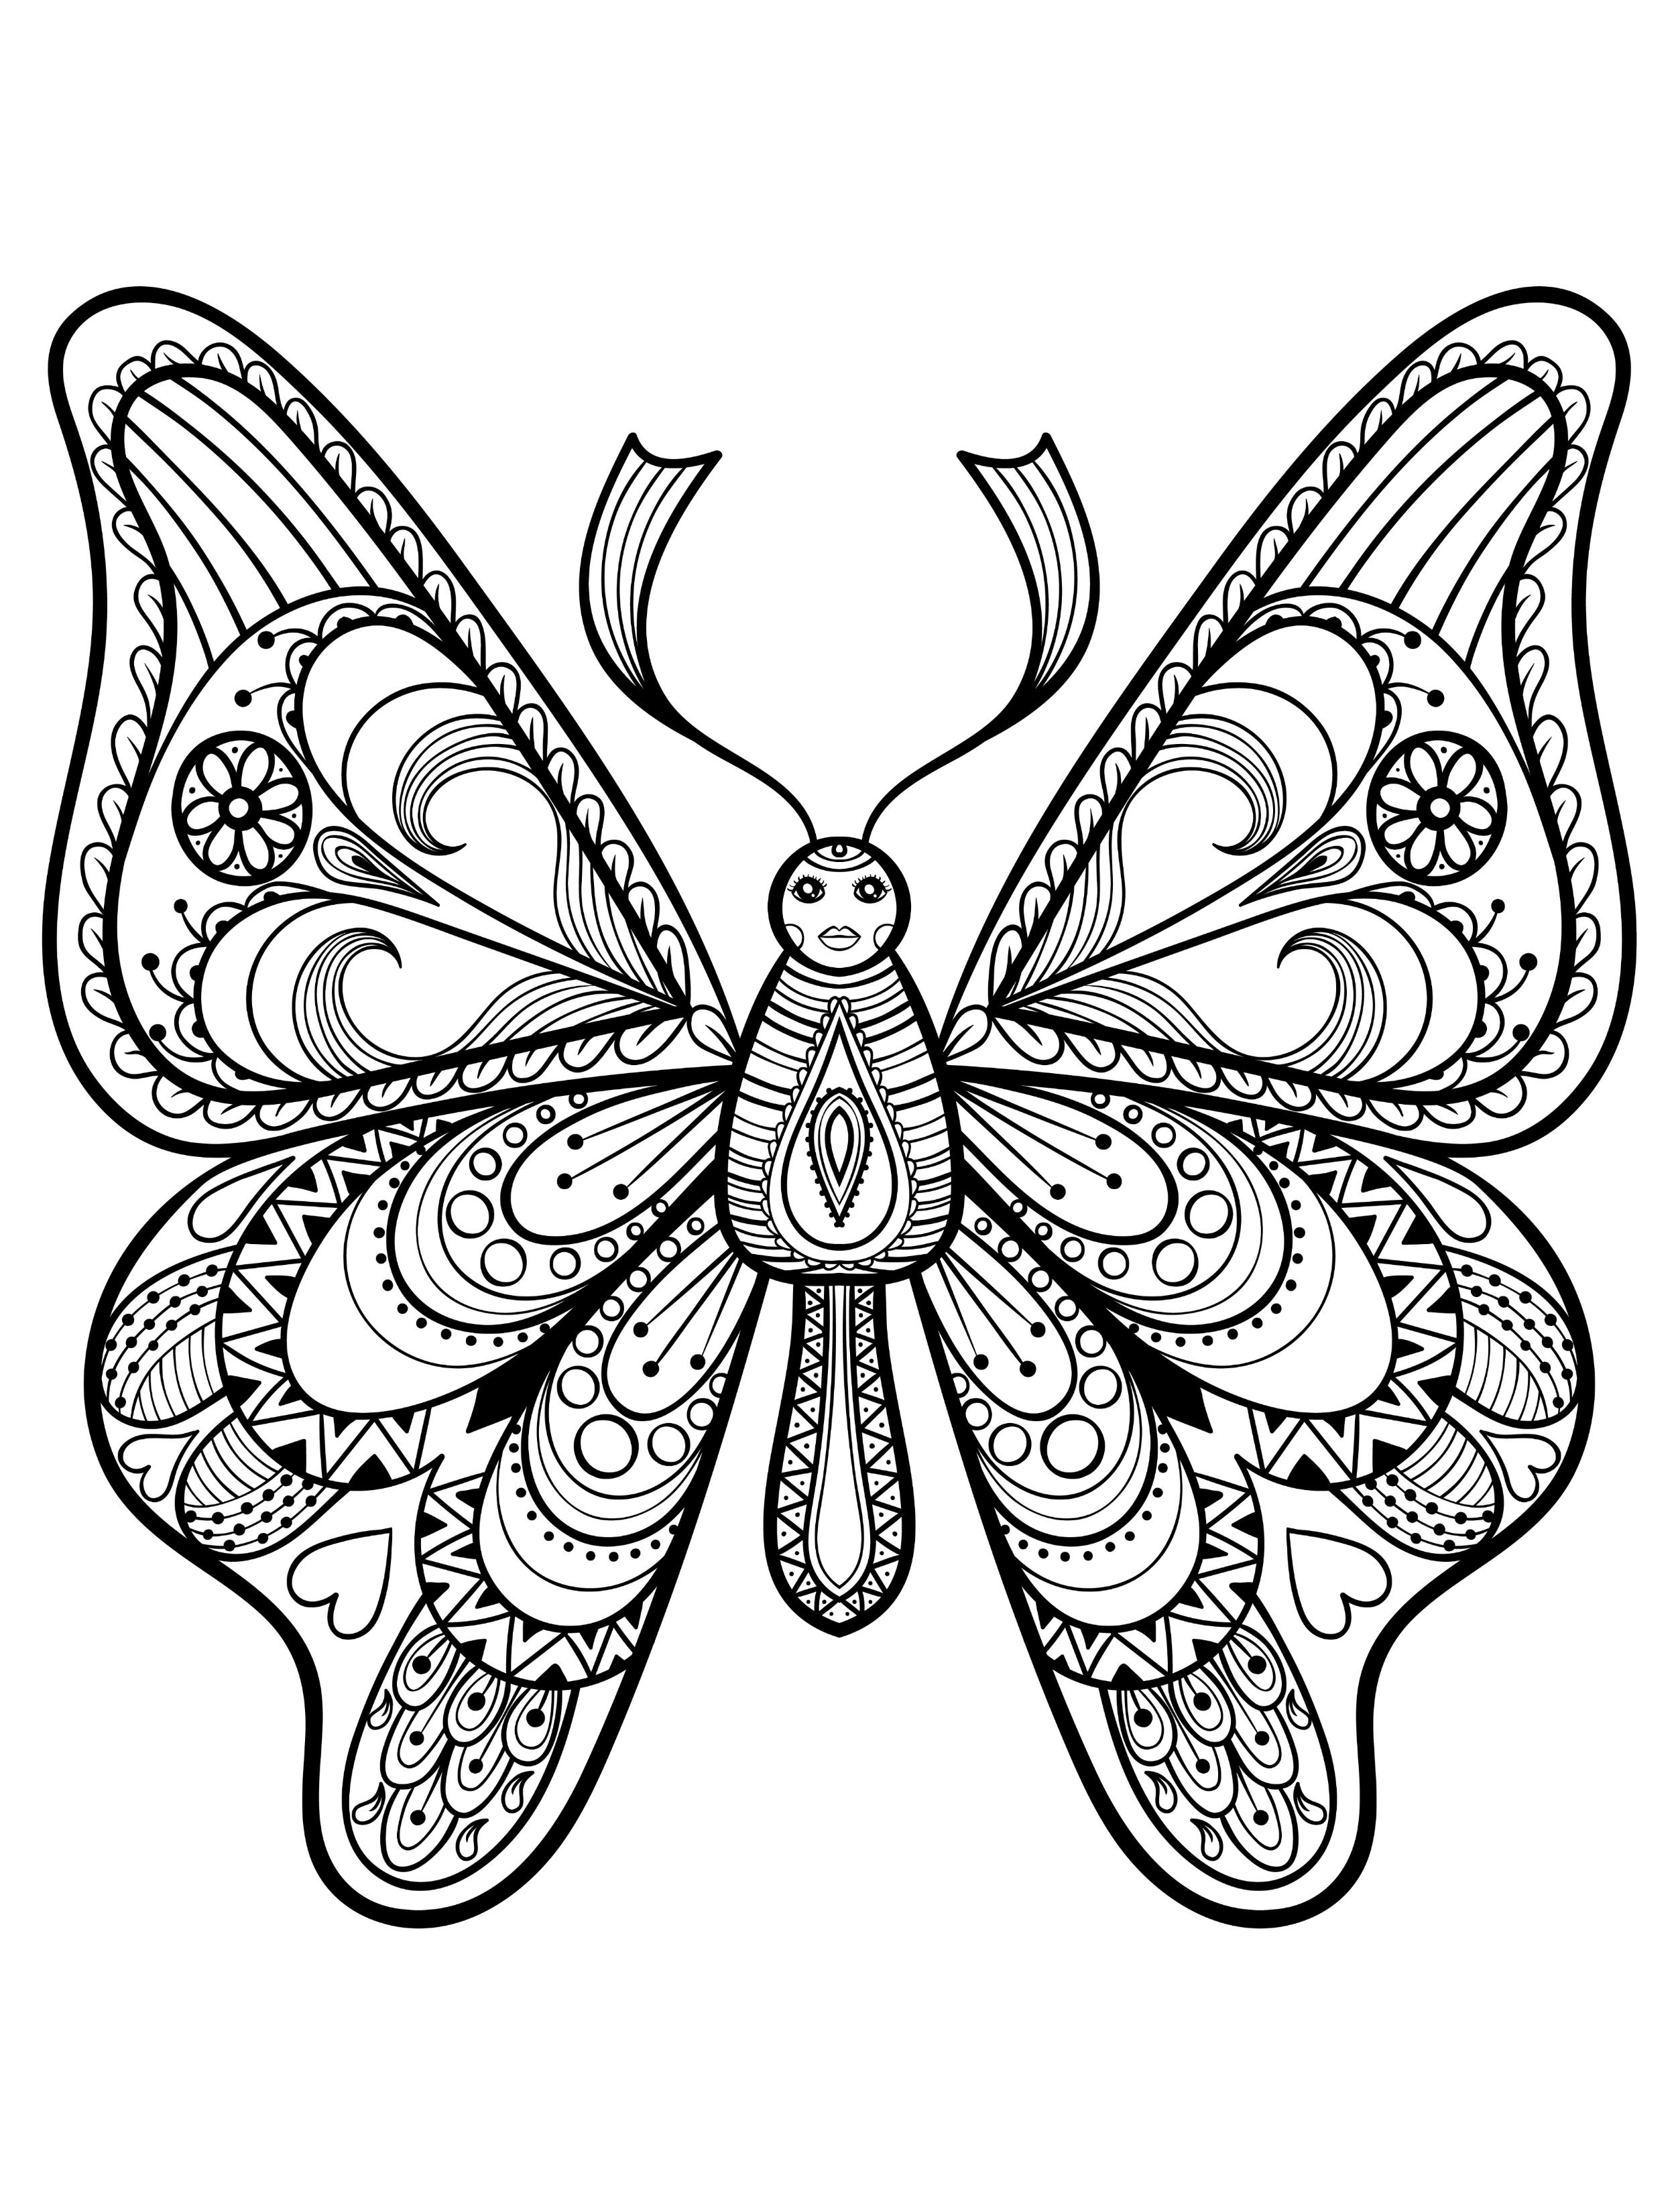 23 Free Printable Insect & Animal Adult Coloring Pages Page 6 of